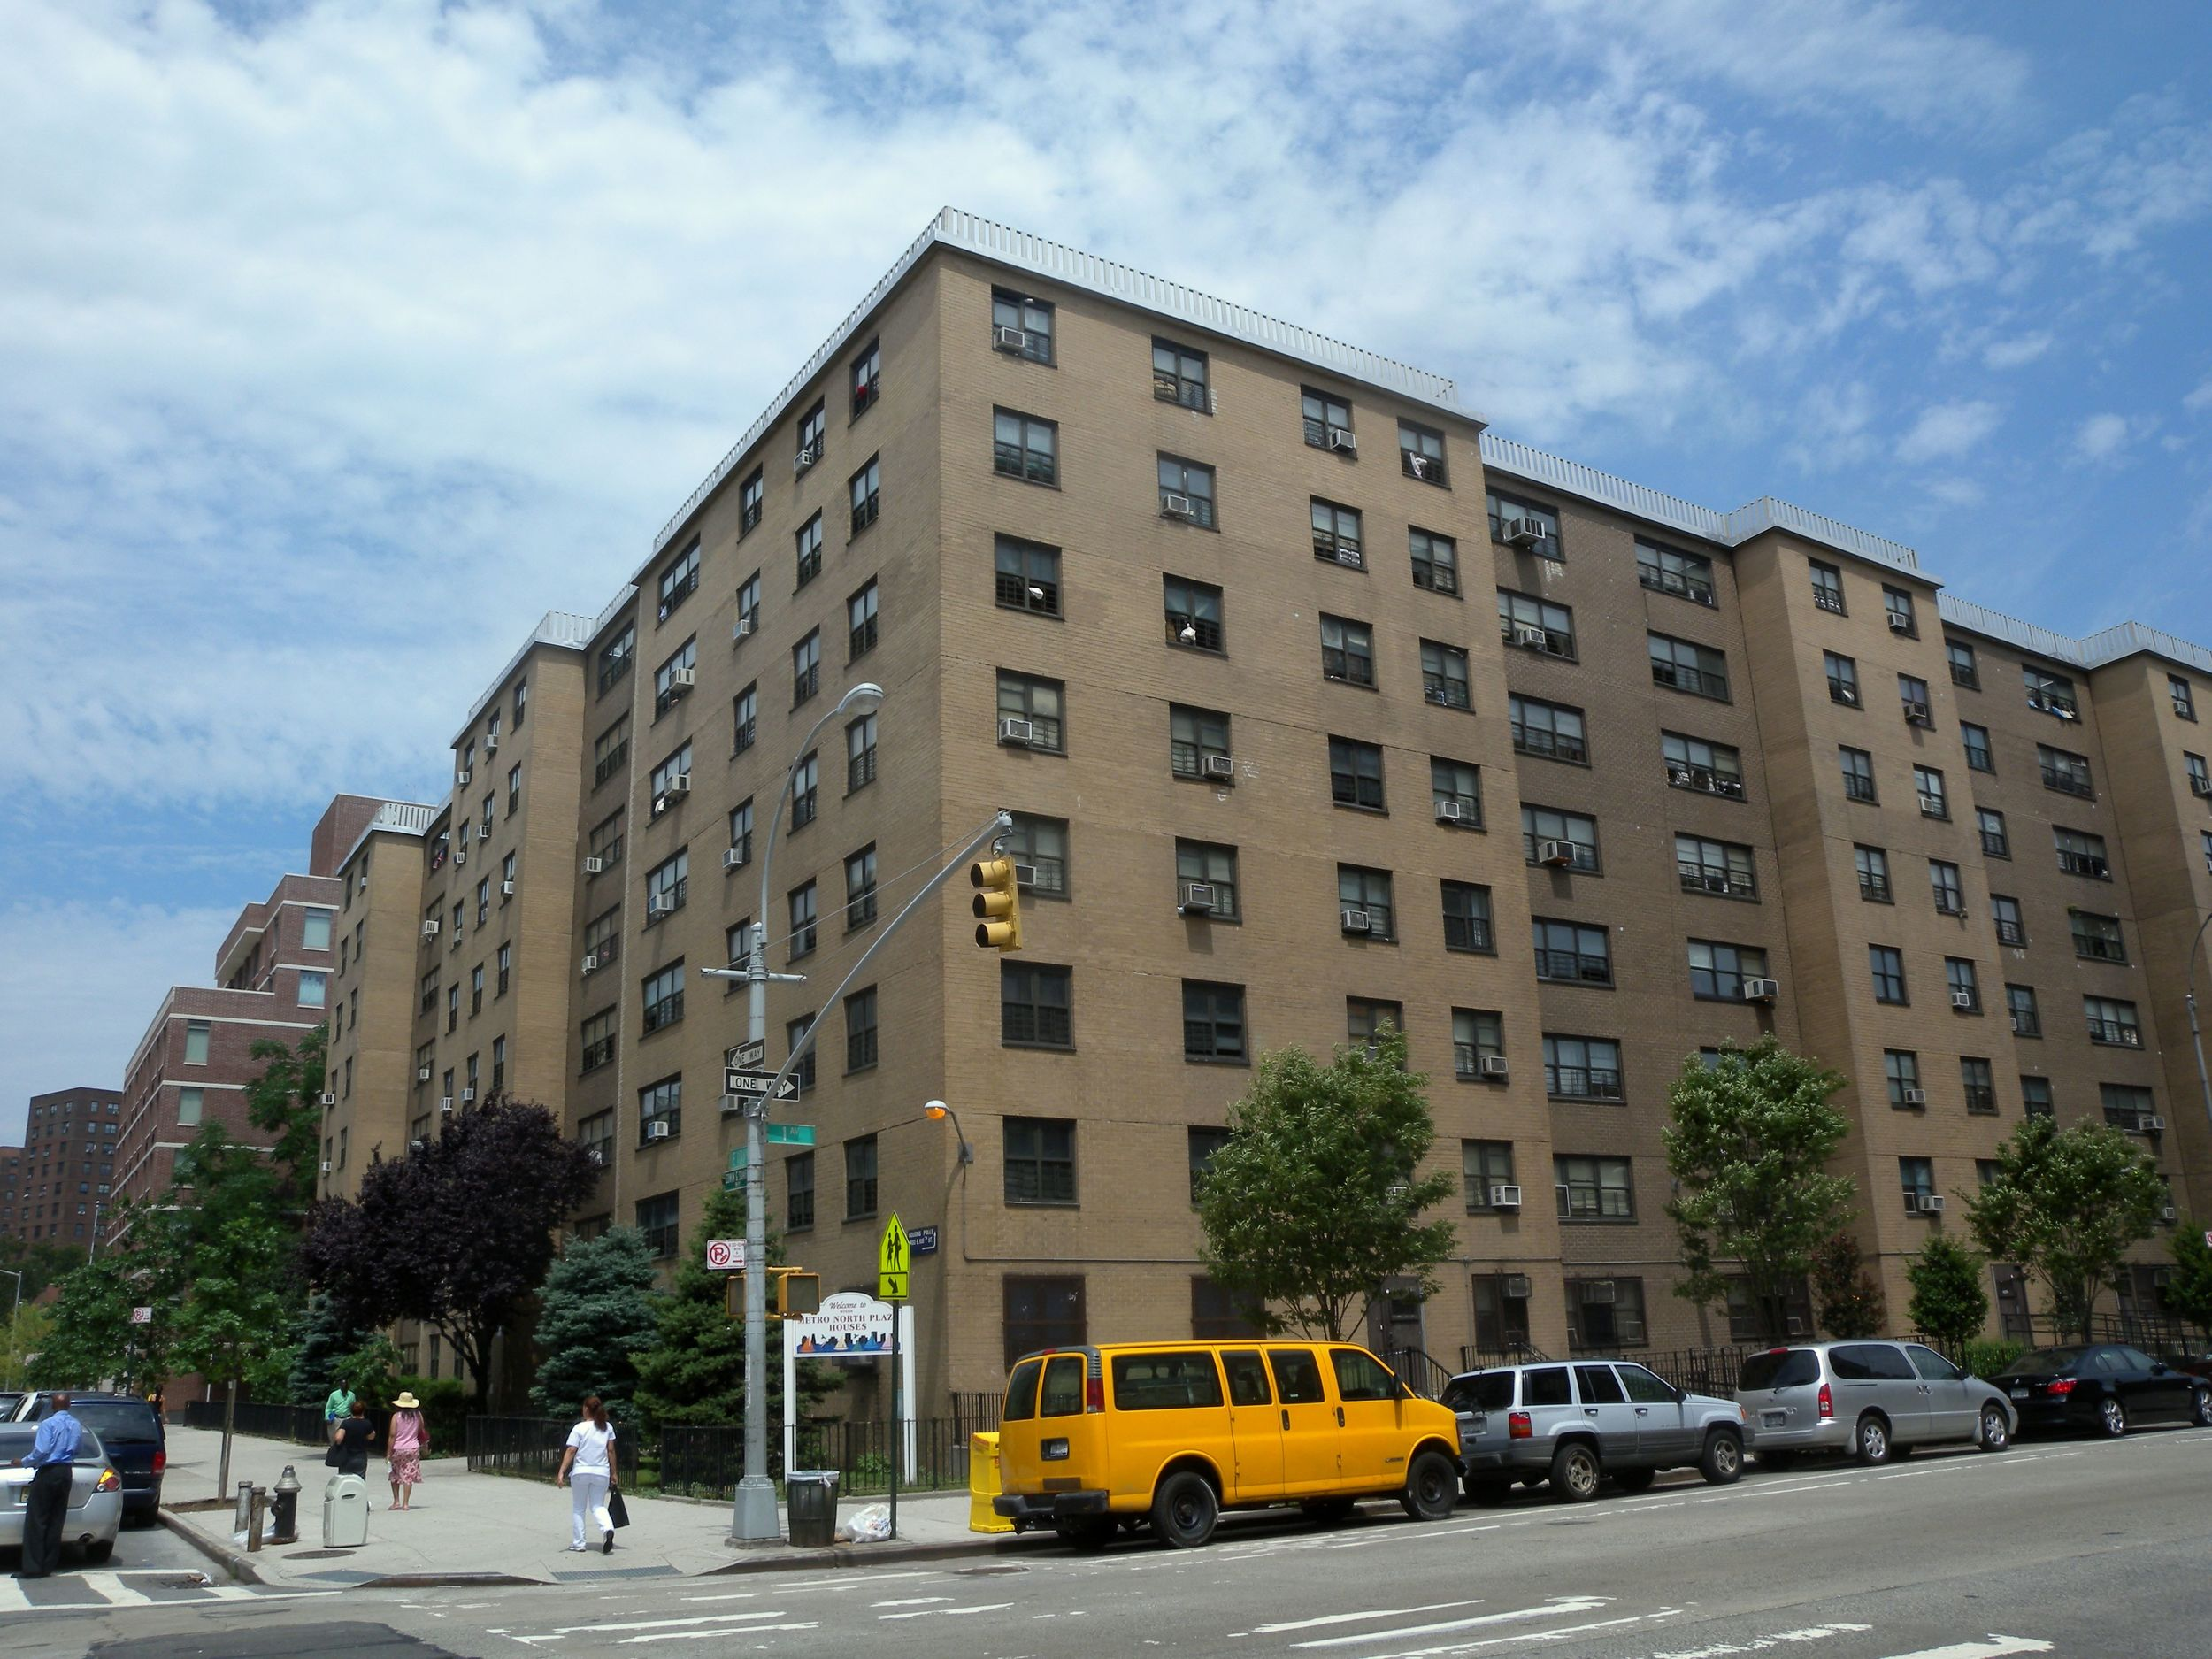 The  Metro North Plaza Houses  in Harlem, seen here in June 2010. In March 2016, an apartment within this building tested positive for  lead  in drinking water with a measurement of 1,249 parts per billion. Source : Jim Henderson/Wikimedia Commons/Universal (CC0 1.0)